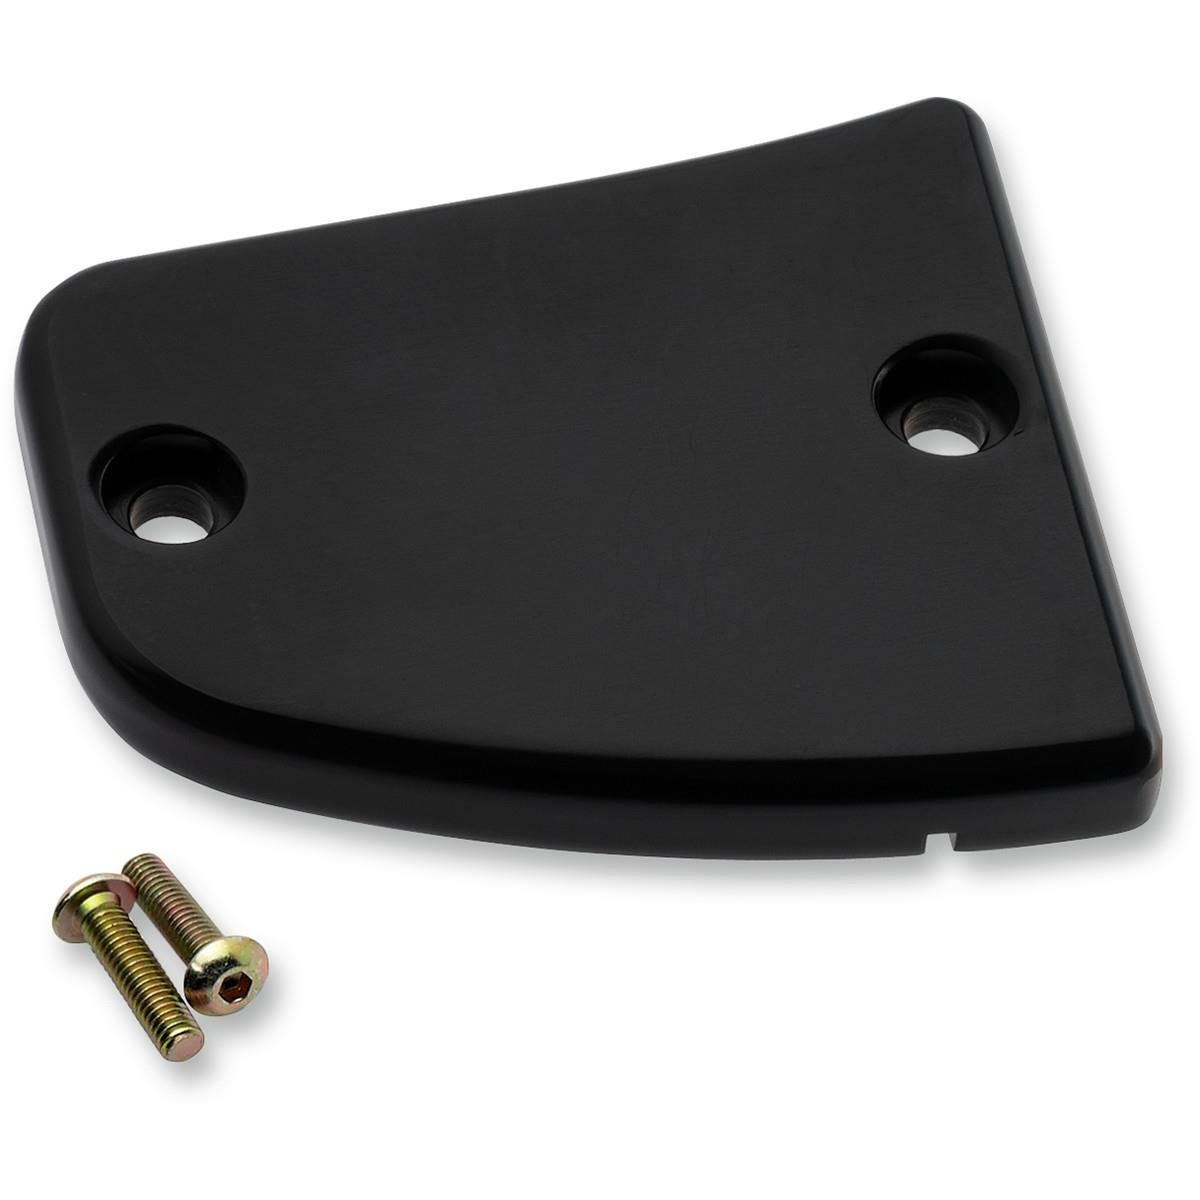 Joker Machine 30-381-1 Front Brake Master Cylinder Cover - Smooth - Black Anodized by Joker Machine